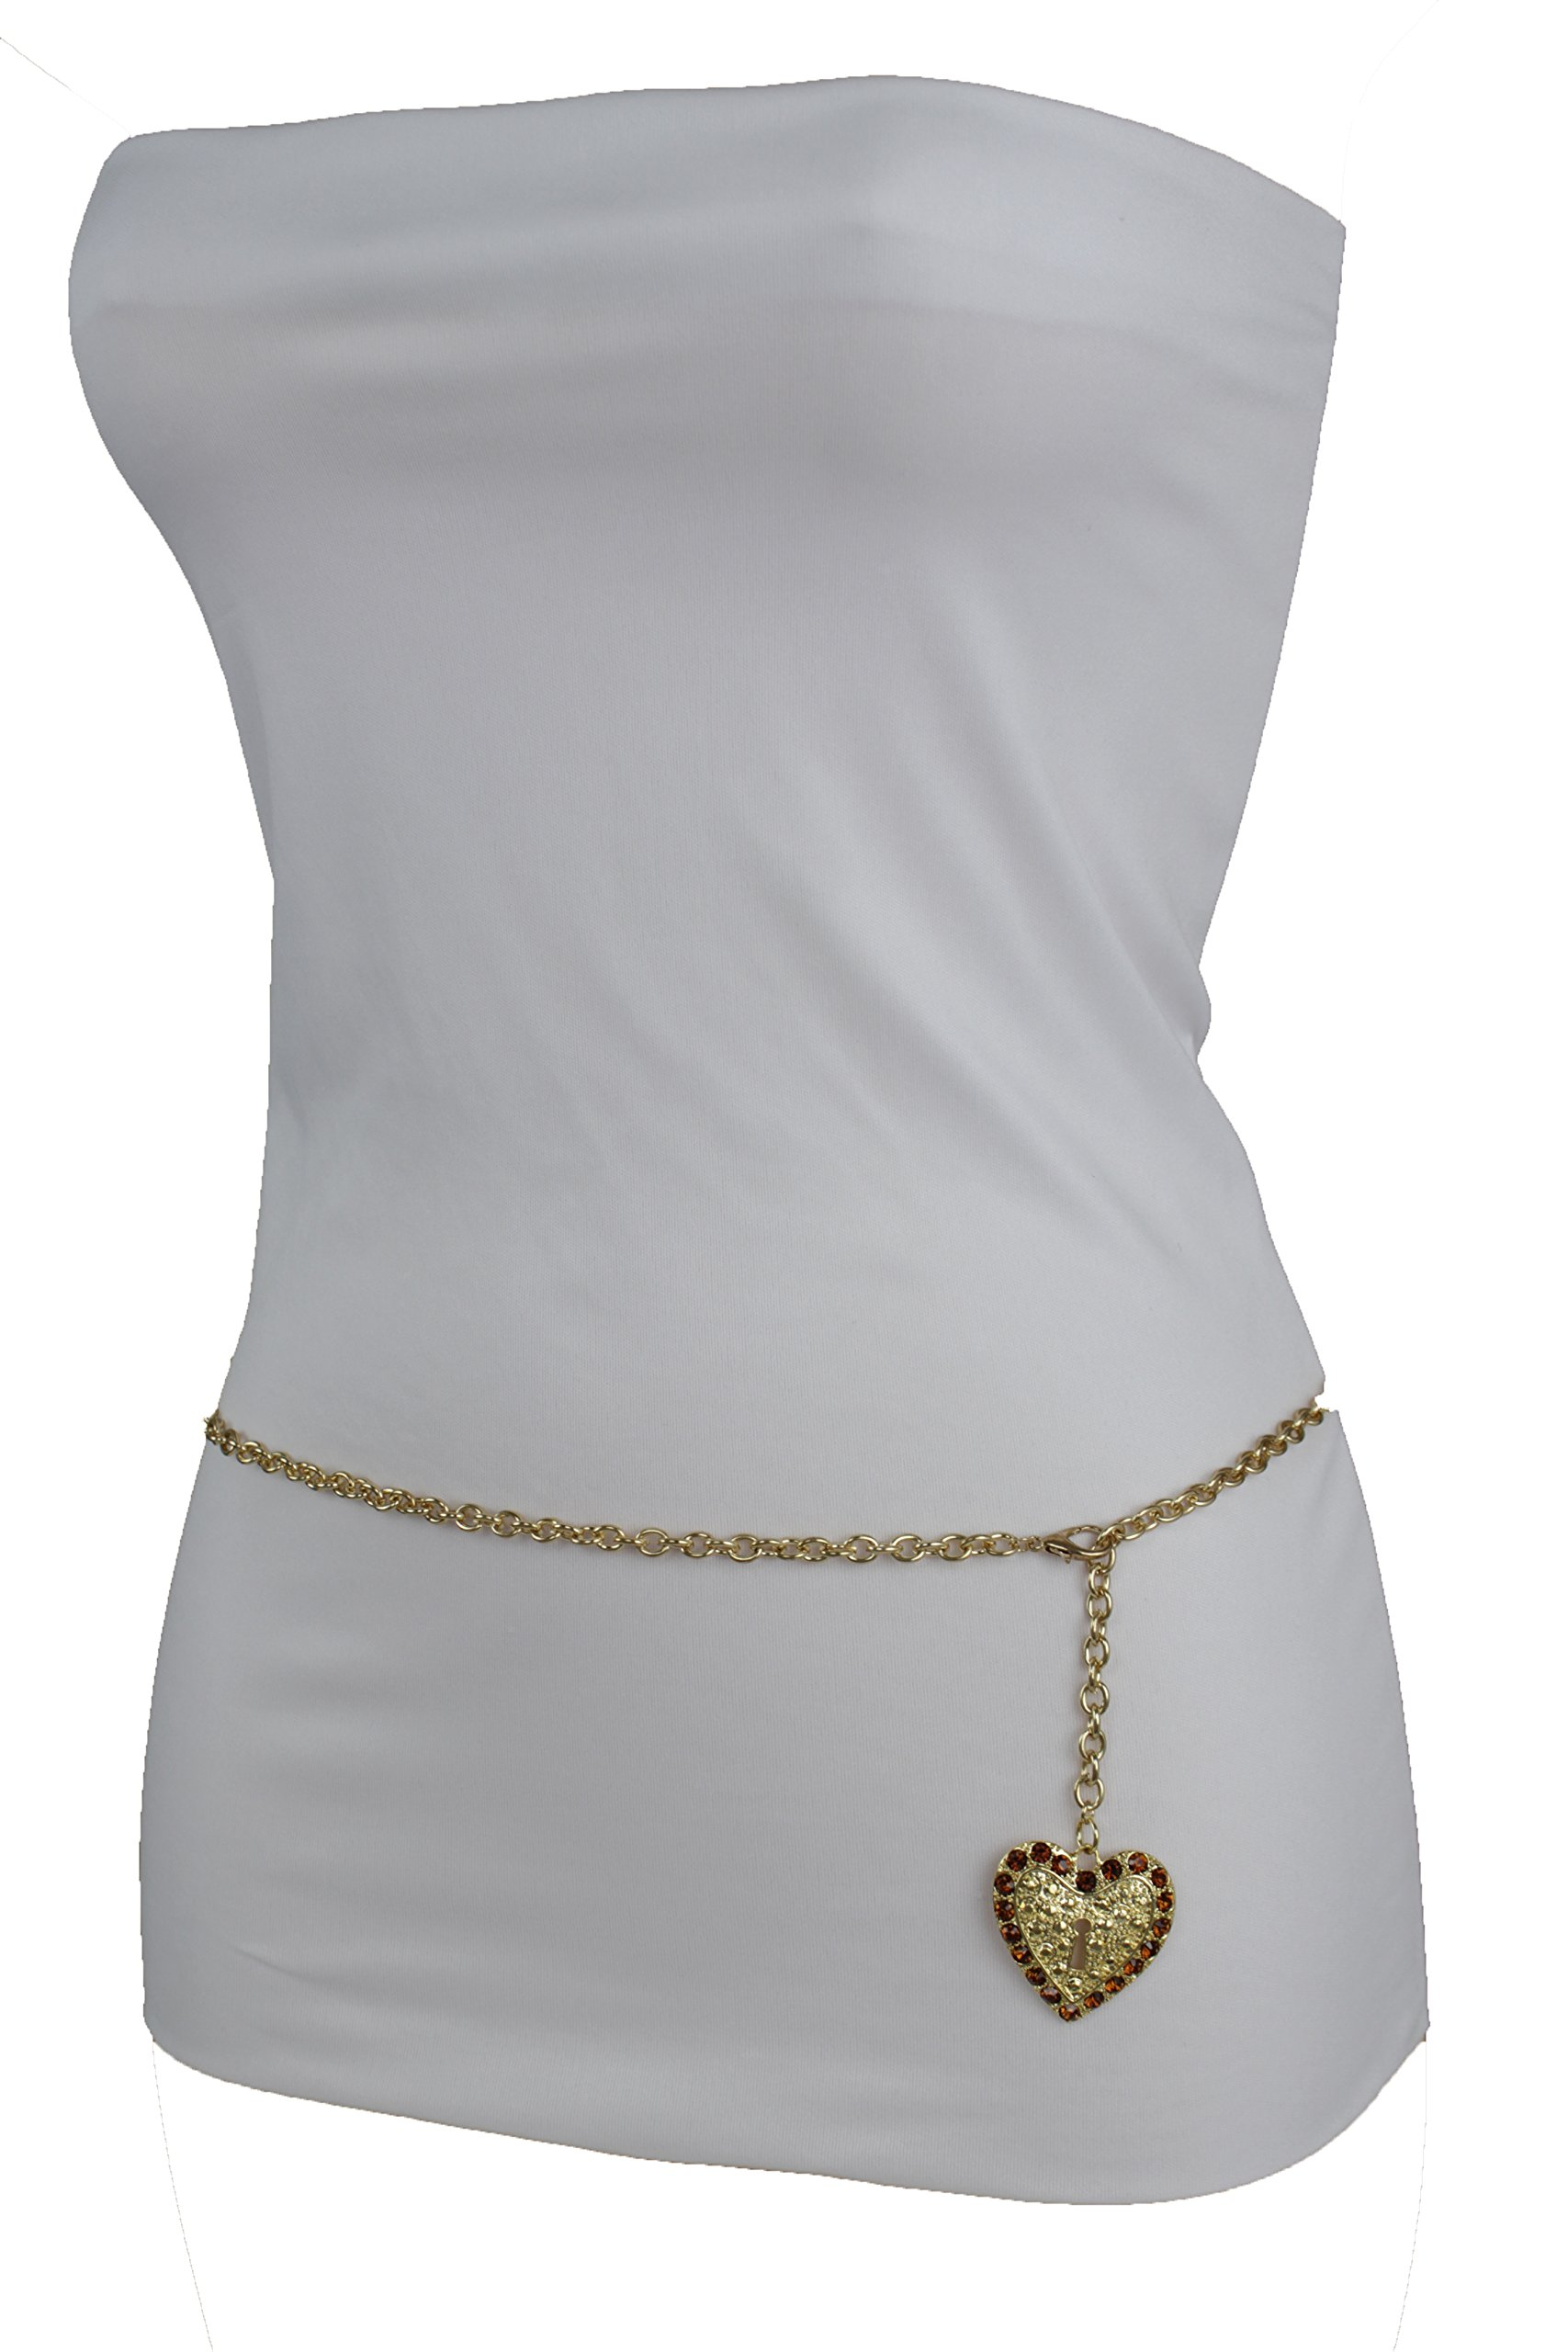 TFJ Women Fashion Narrow Belt Hip High Waist Gold Metal Chains Lock Love Key Heart Buckle (Medium-XL 30''-45'' waist)